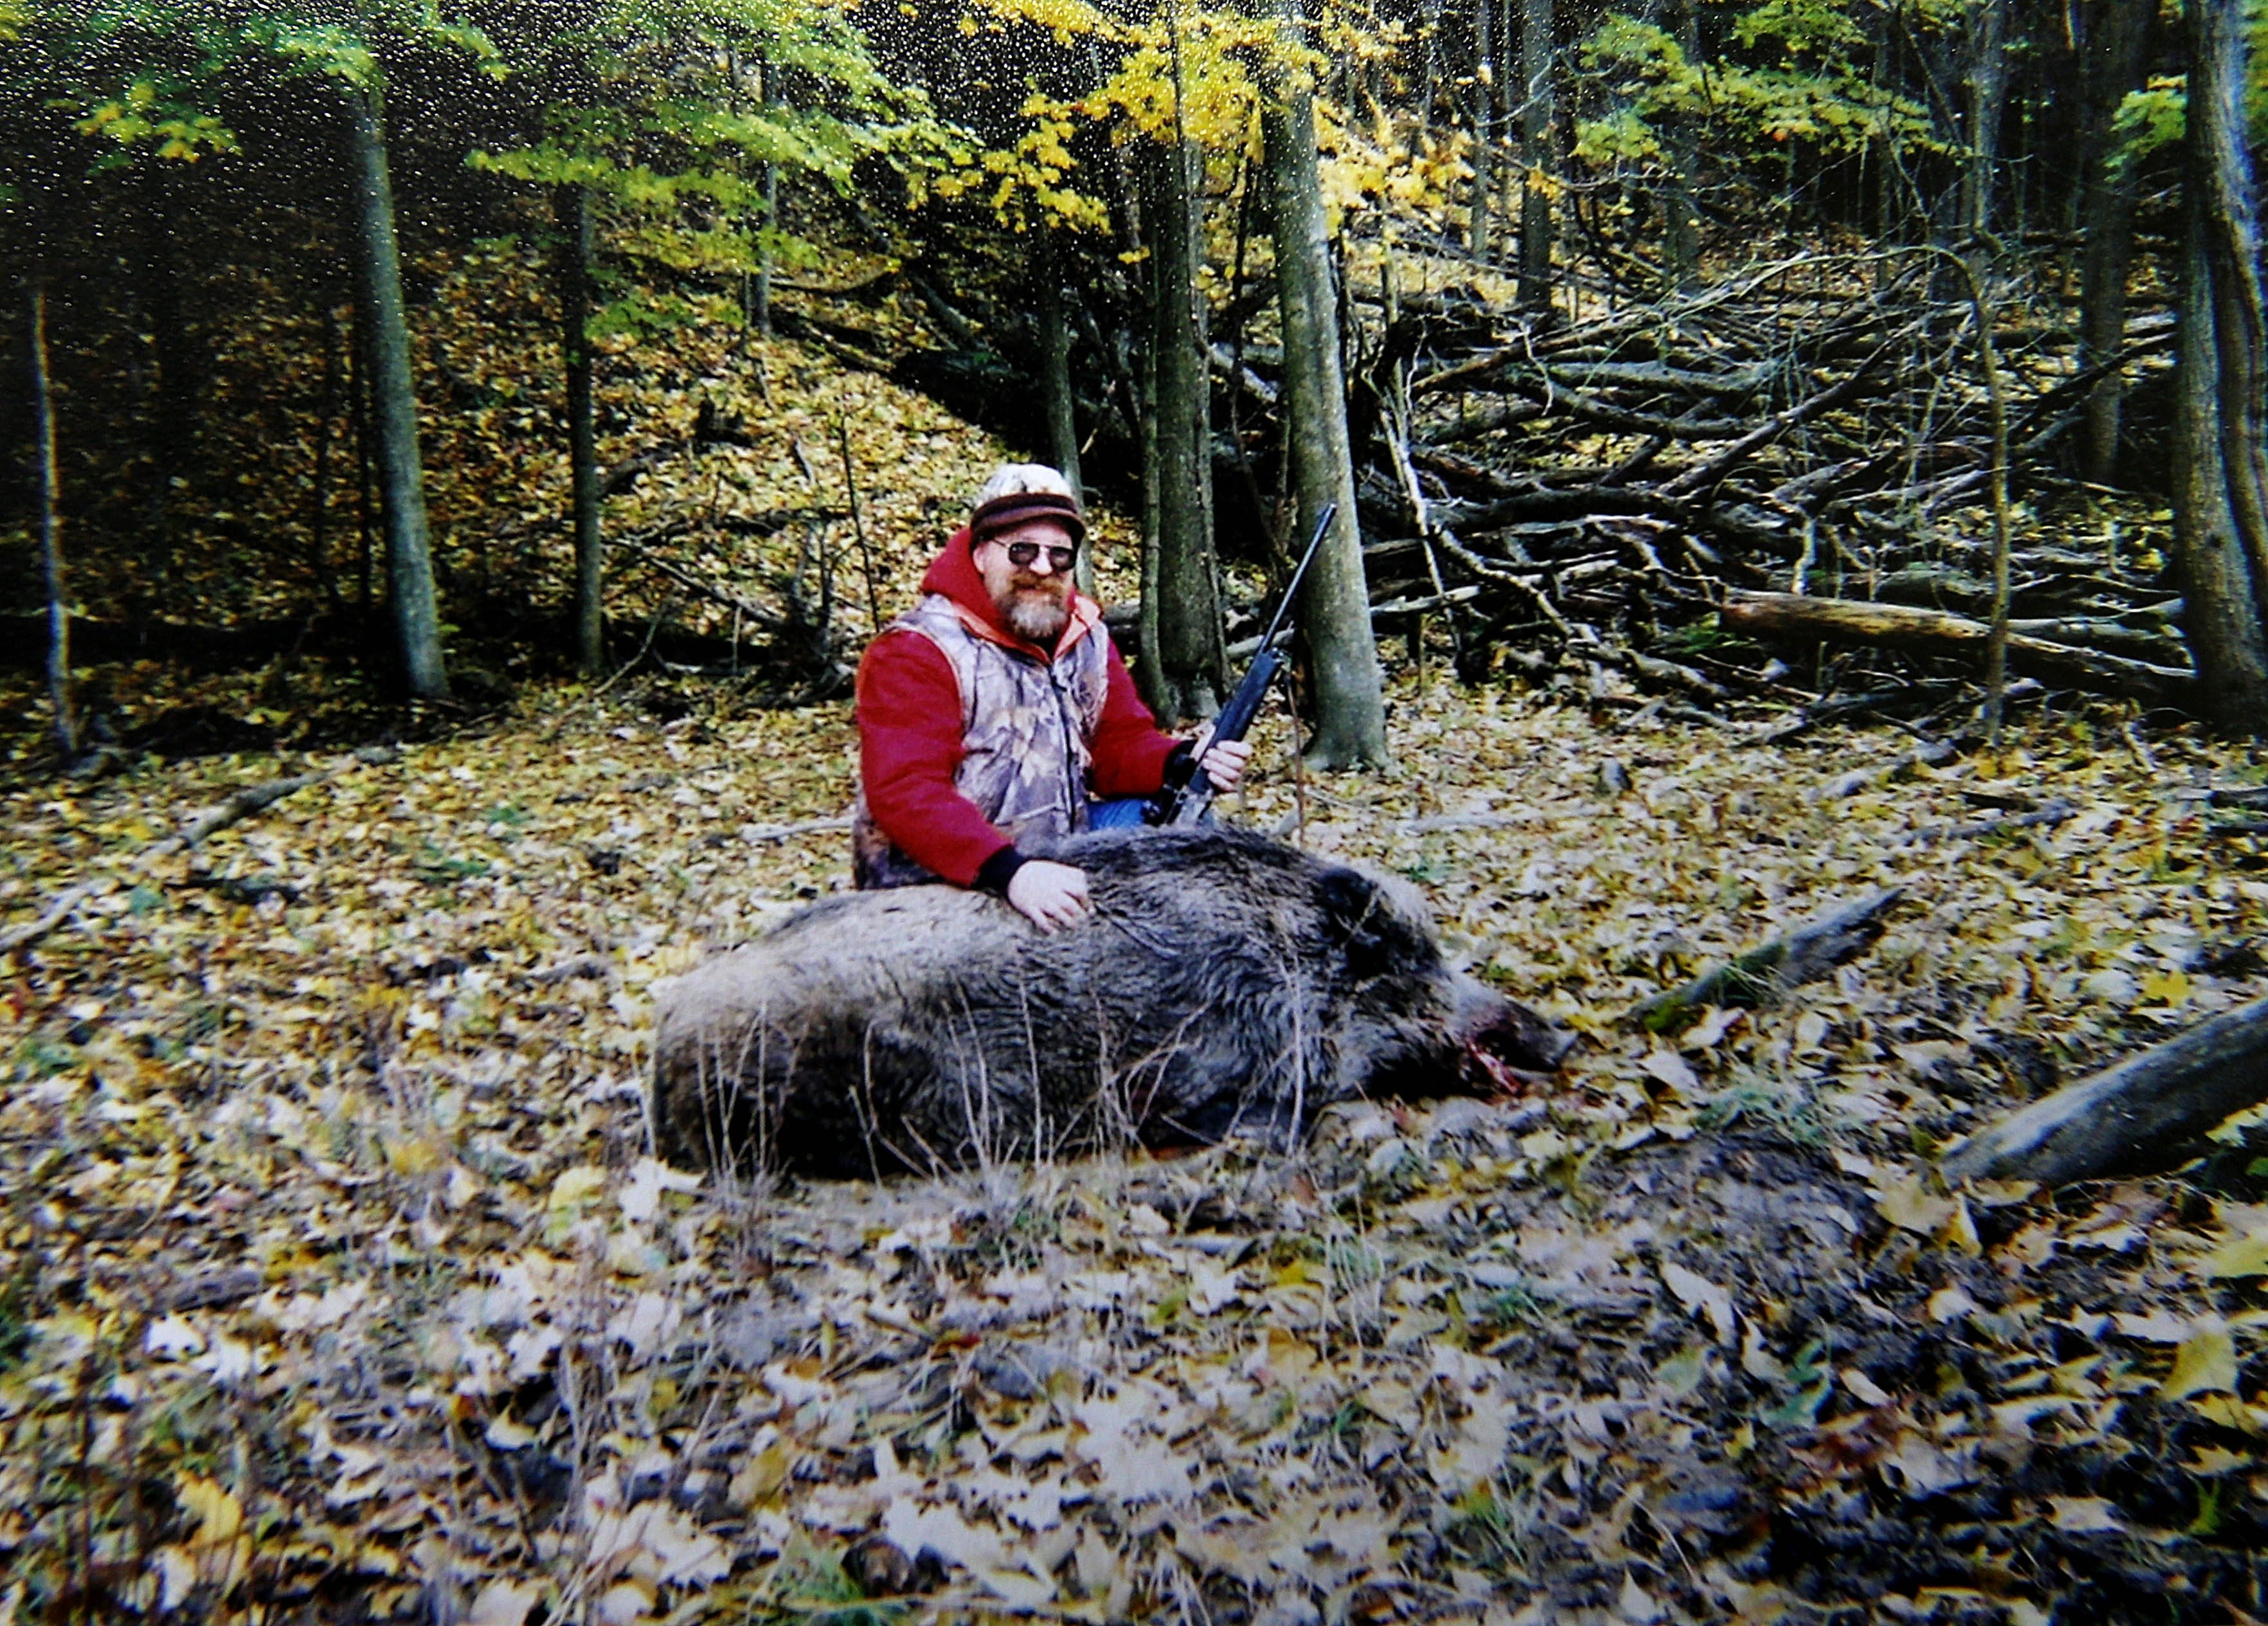 Hunter John Lord, a client of Pete Smith's Creekside Outdoors in Forestville, poses with a boar from a recent successful hunt at the hunting preserve.